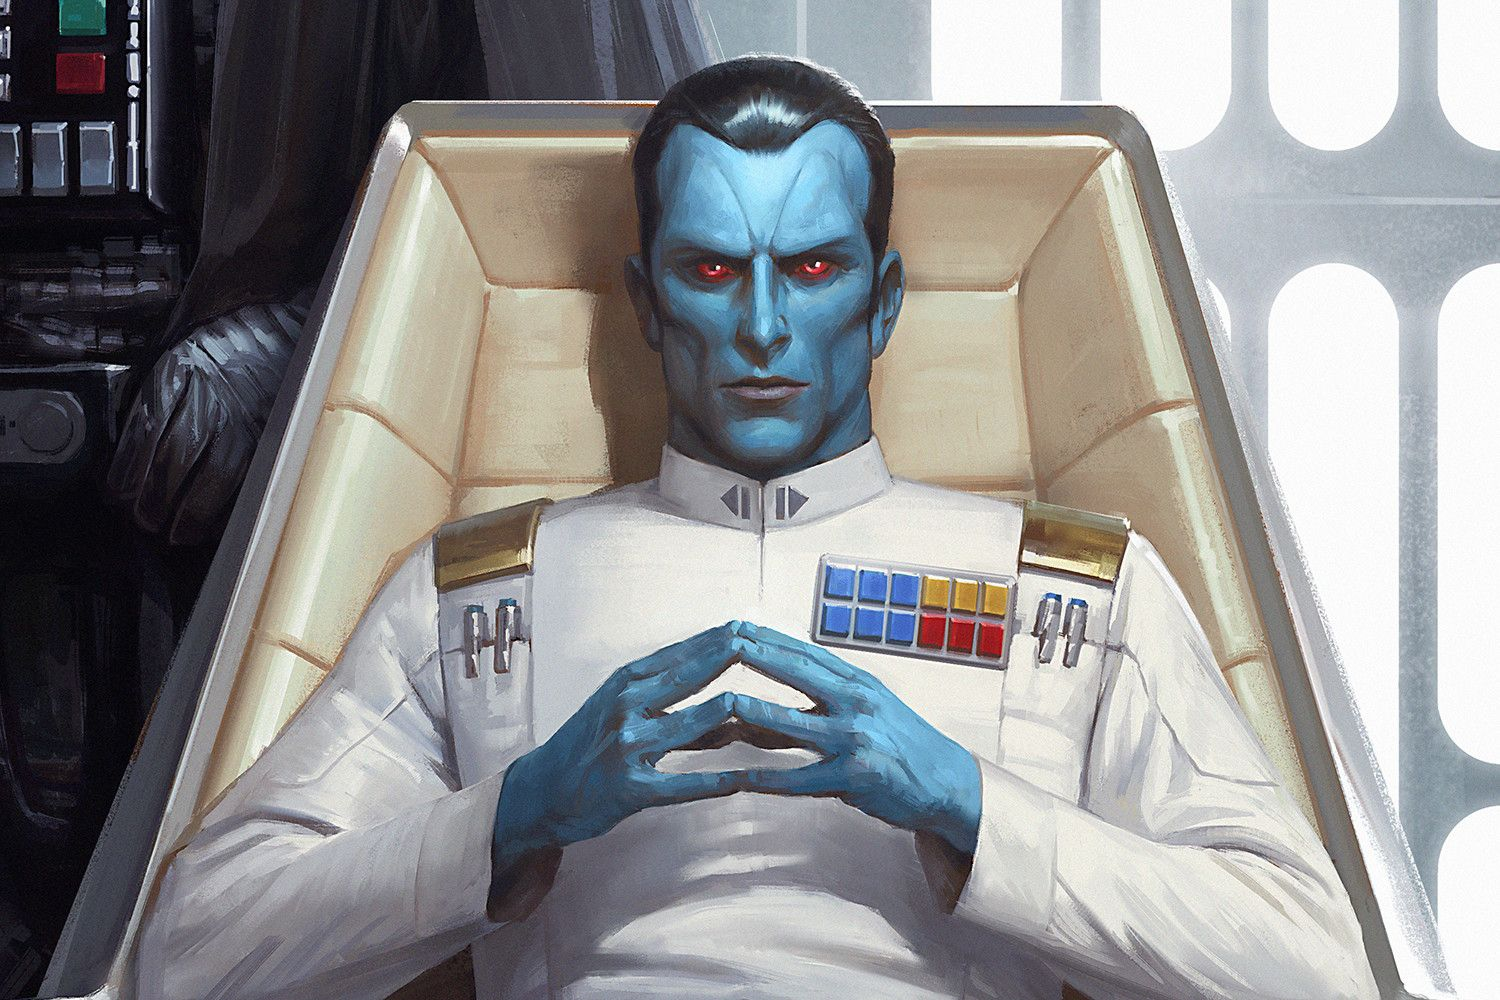 Grand Admiral Thrawn | Star wars characters, Star wars artwork, Star wars  books